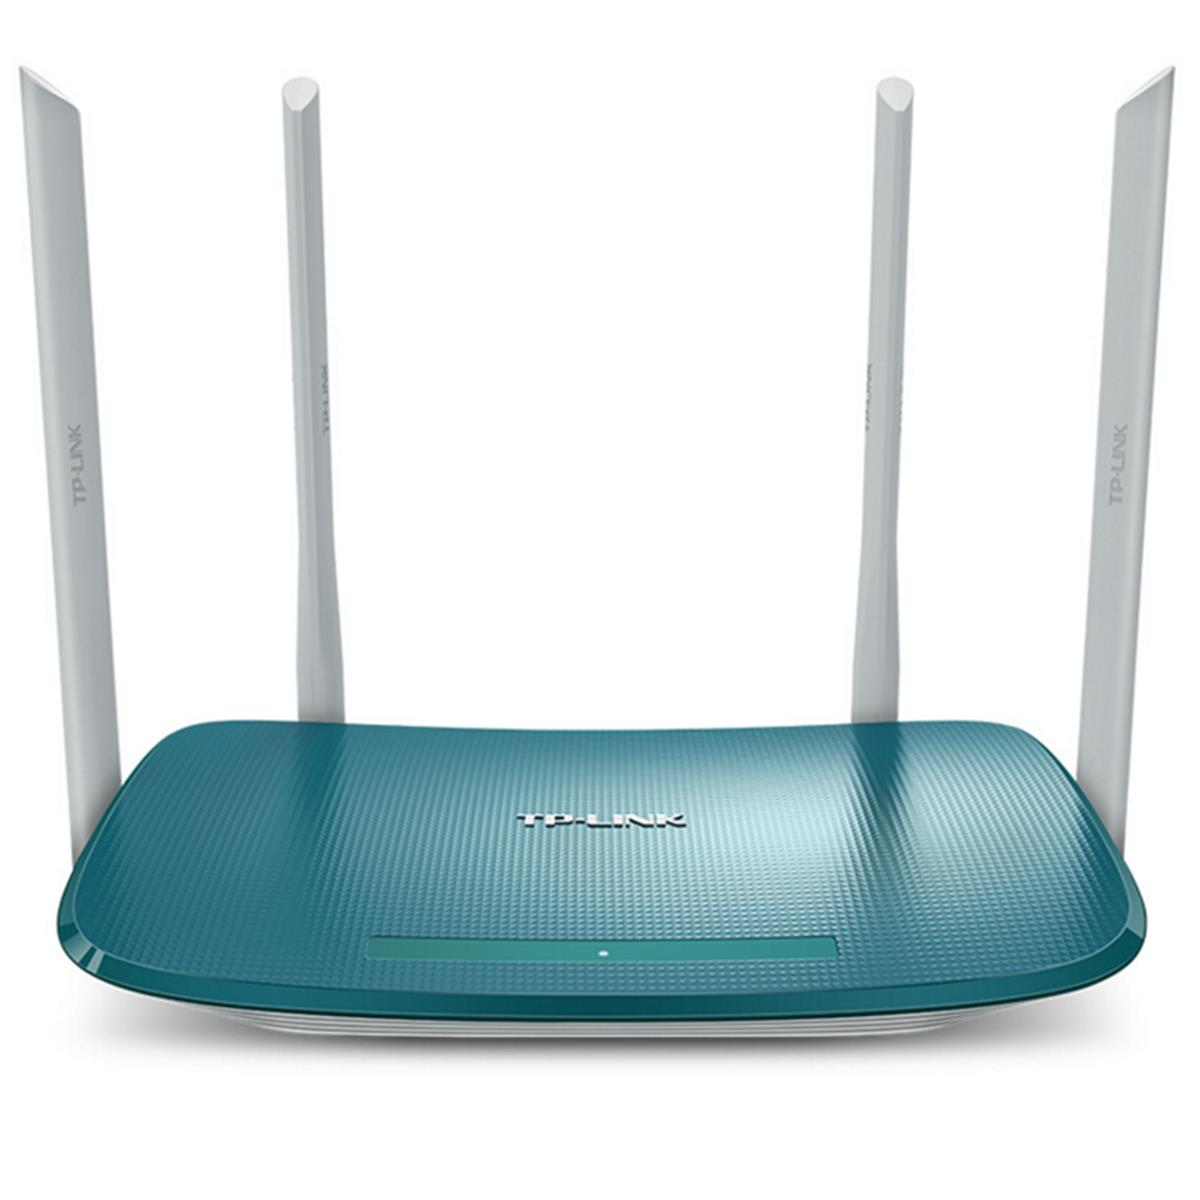 TP-LINK 1200Mbps 2 4/5G Dual Band Wireless Signal Range Extender WiFi  Repeater Router 4 Antenna